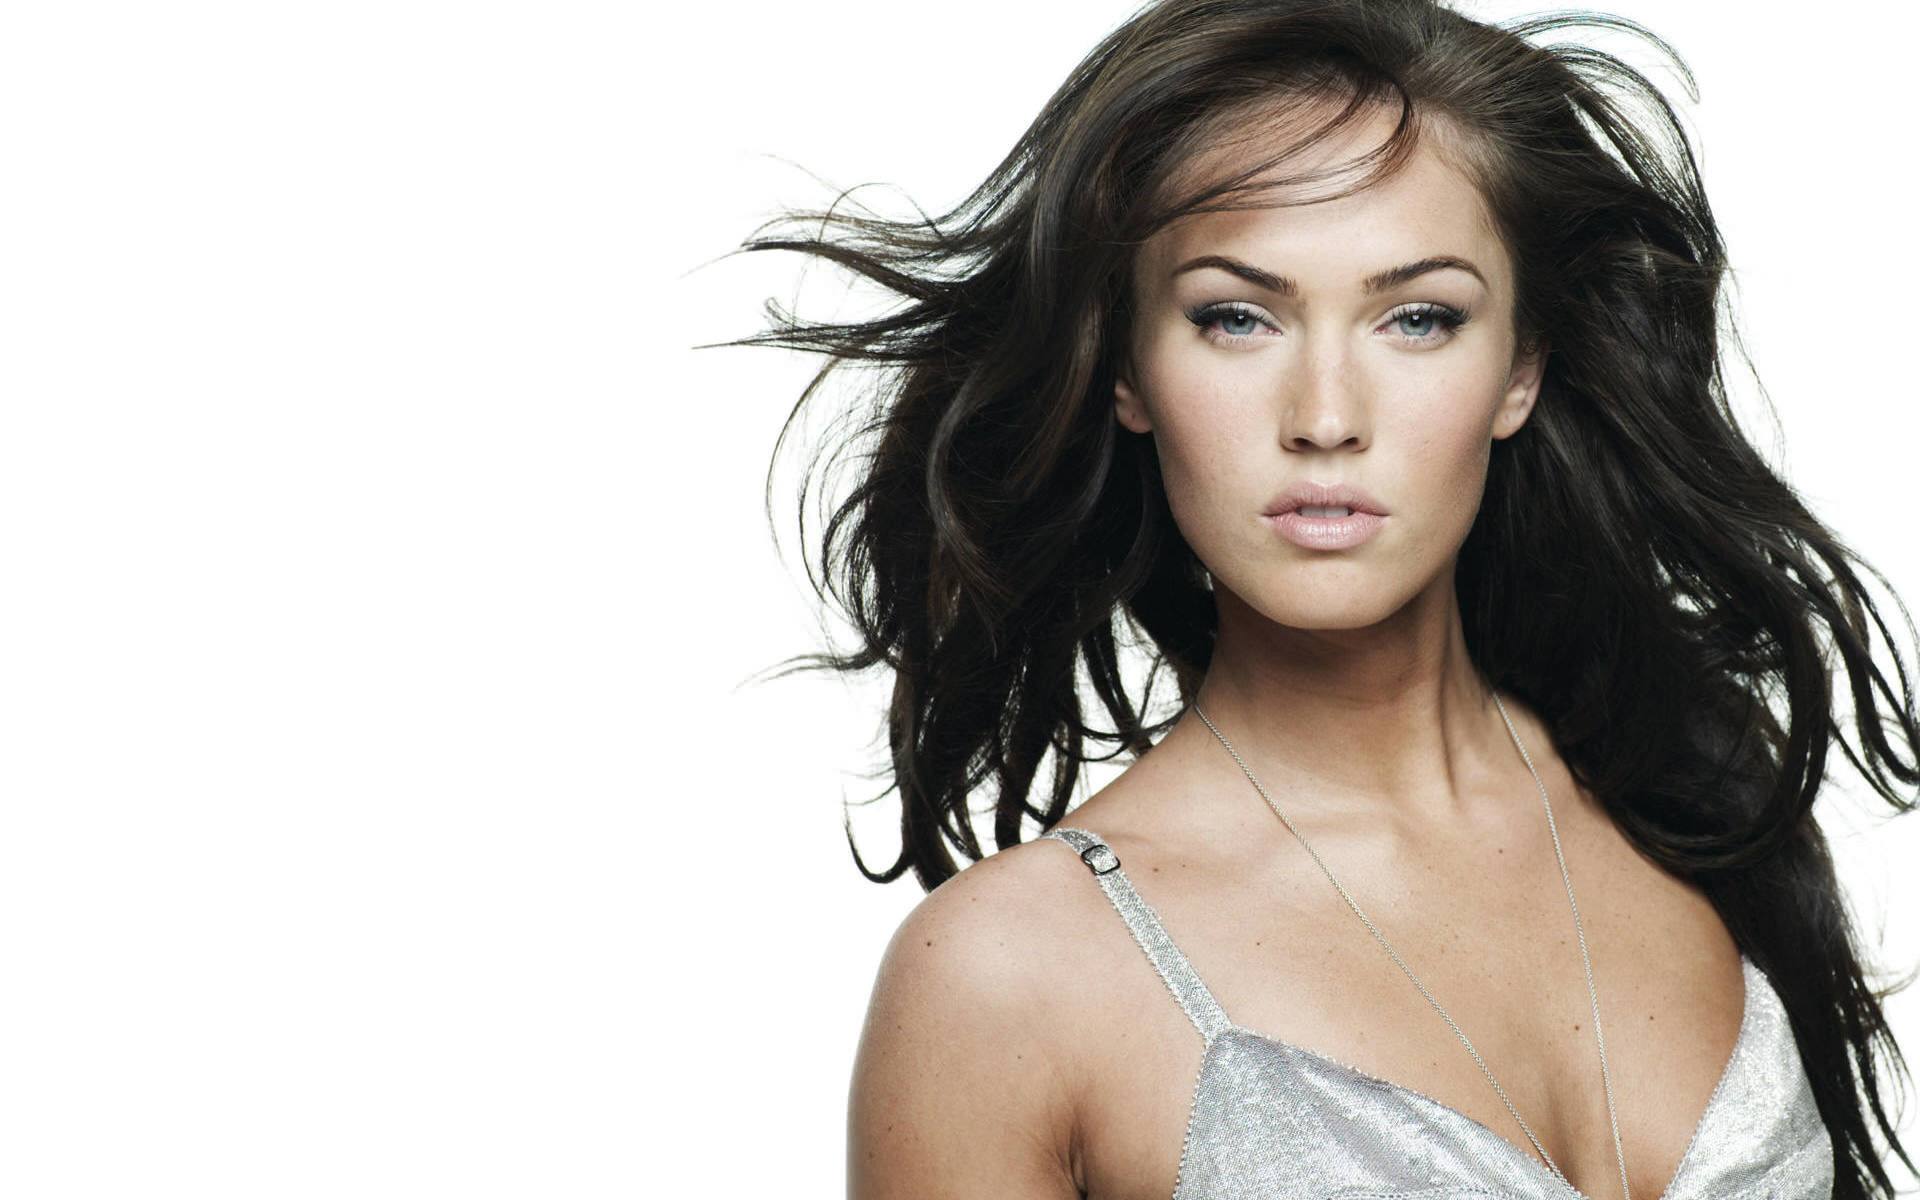 megan fox high resolution wallpaper 467952